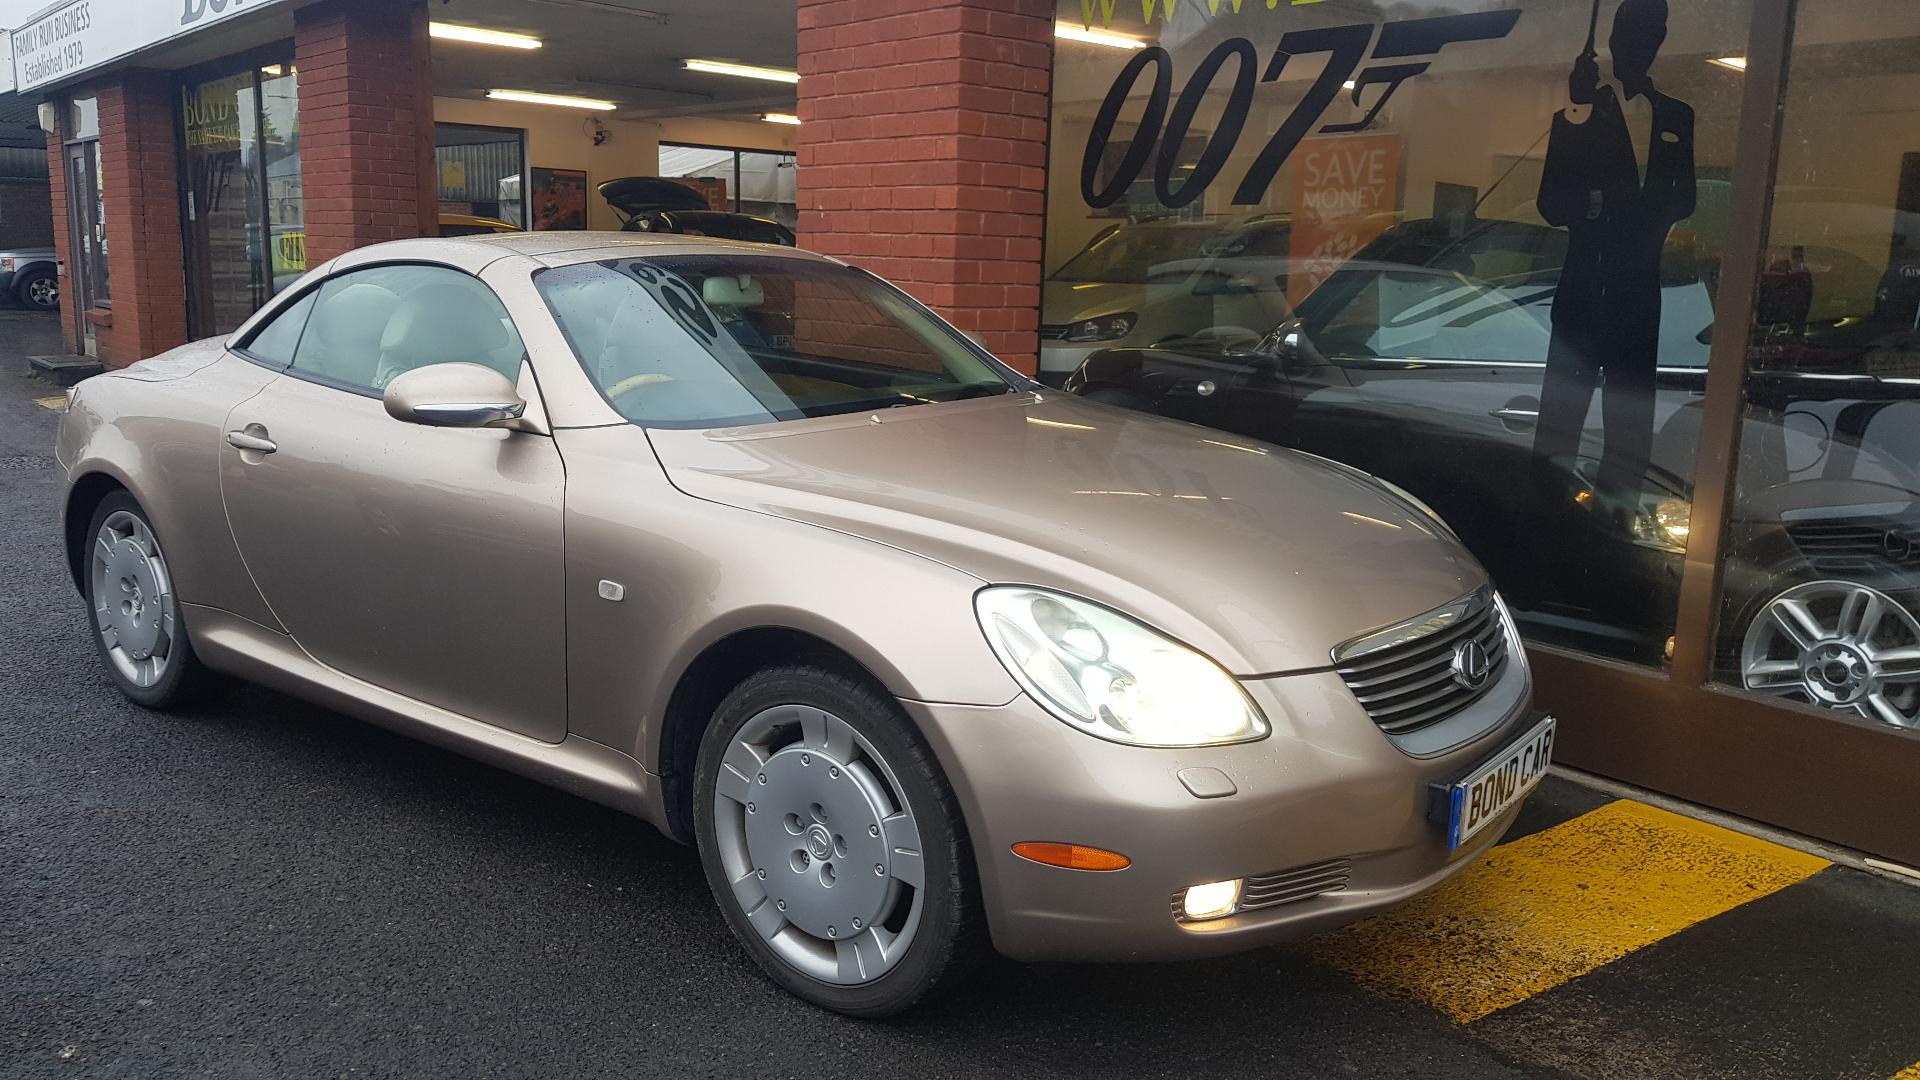 2004 (M) Lexus SC 430 4.3 V8 Auto 280 bhp Nav Convertible For Sale In Swansea, Glamorgan